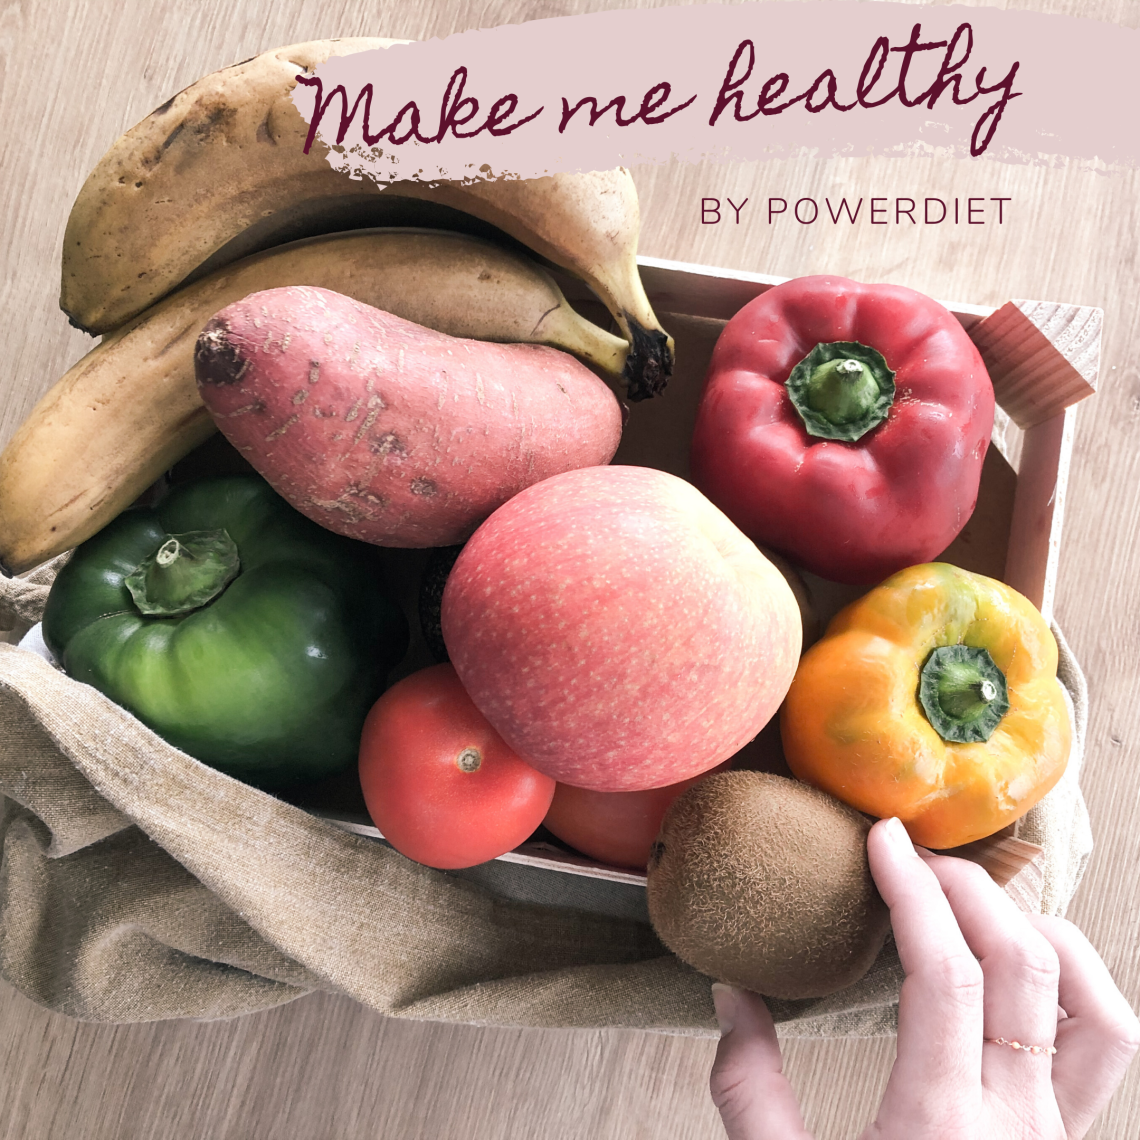 Make me healthy by powerdiet